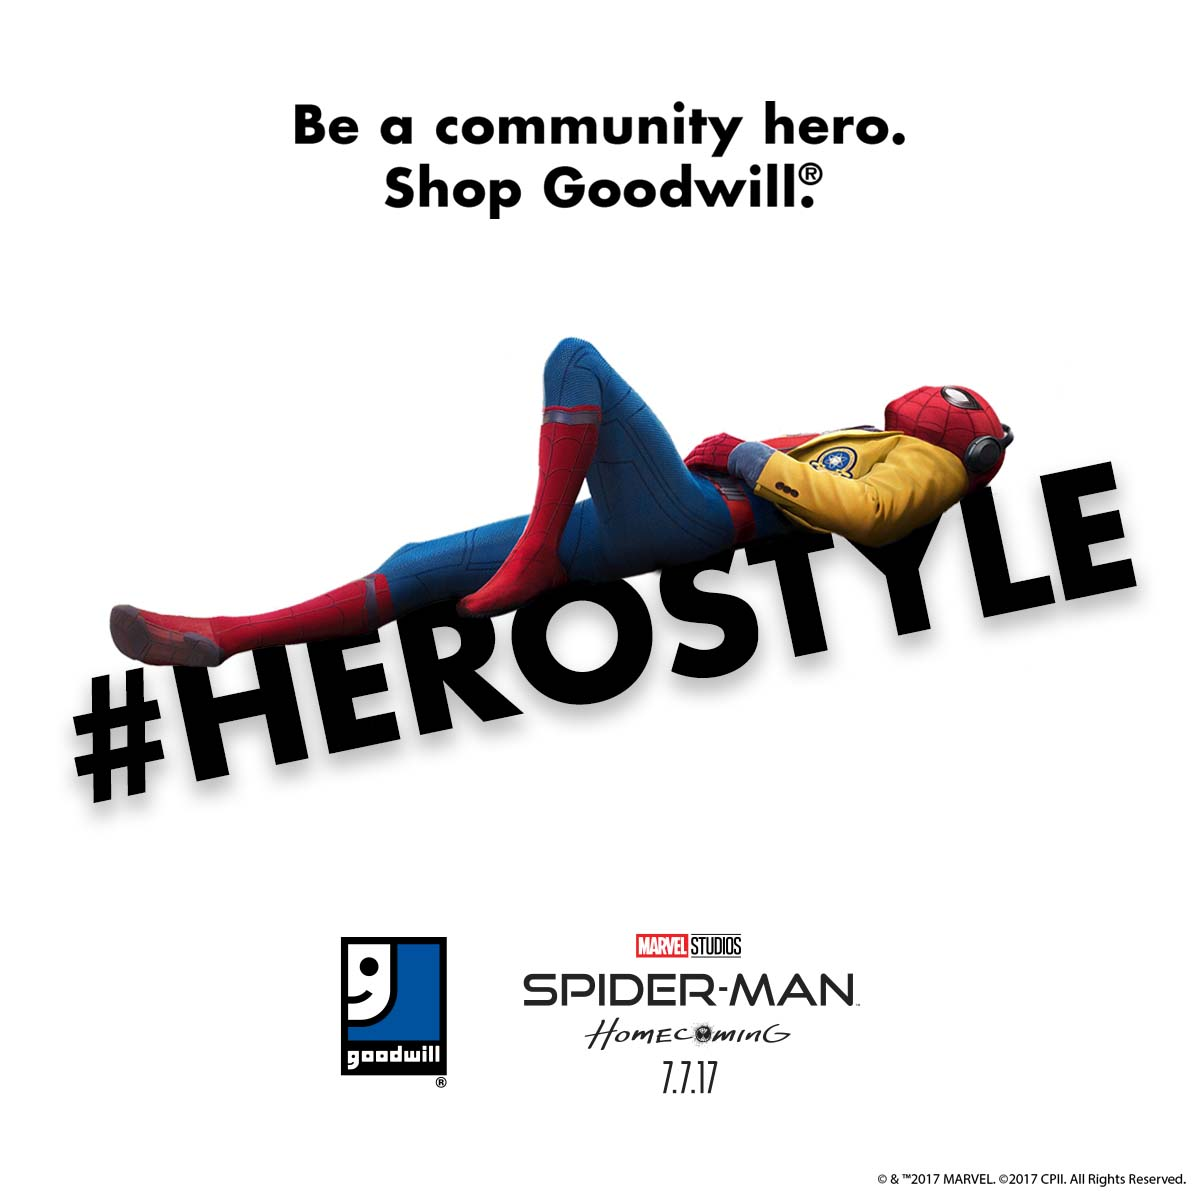 Shop Goodwill! Show your #HeroStyle and help build a brighter future for your community.